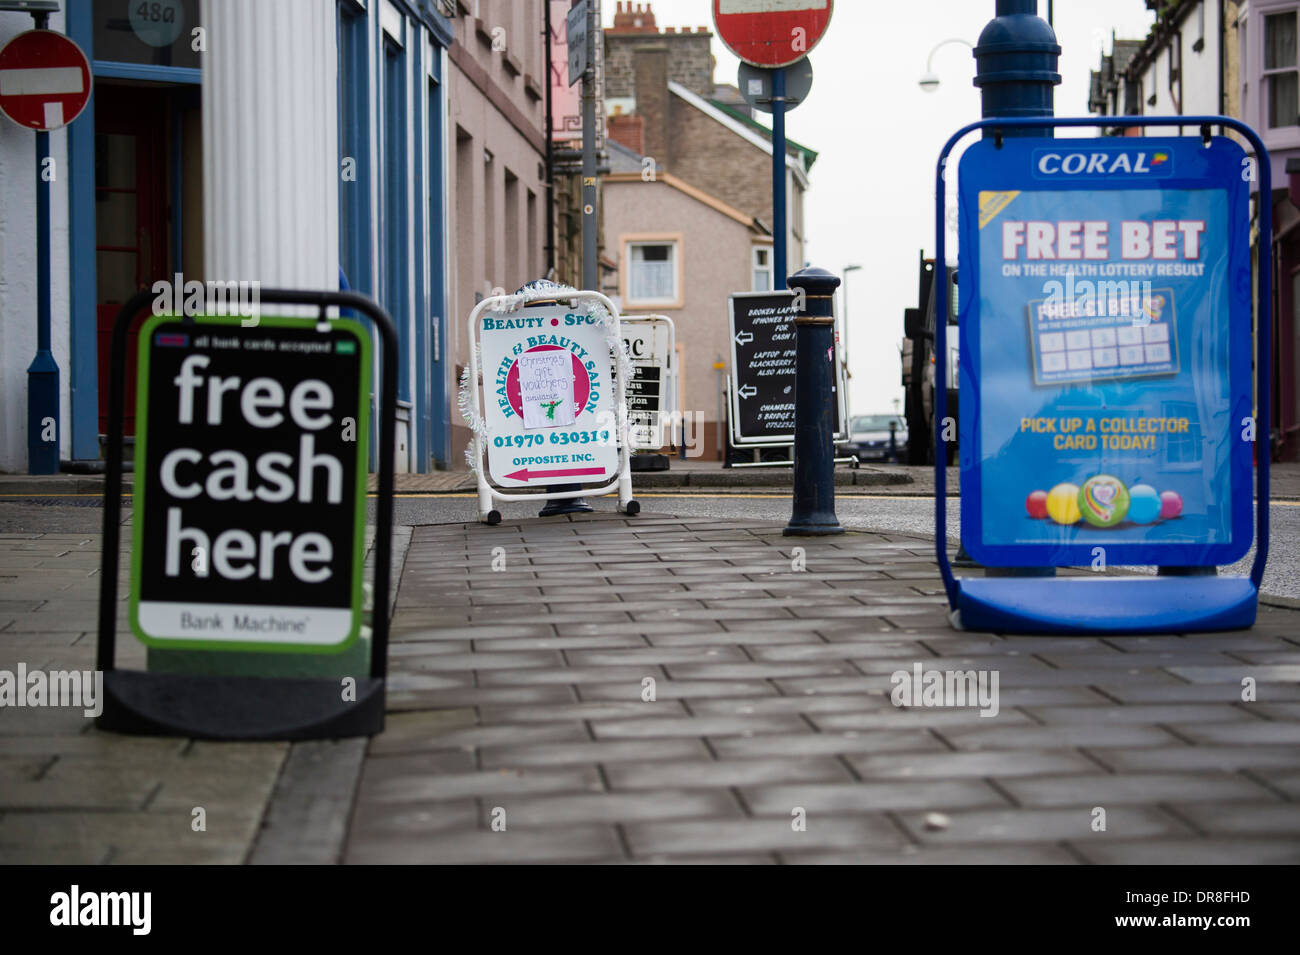 A proliferation of street shop advertising signs causing an obstruction on the pavement Aberystwyth Wales UK - Stock Image